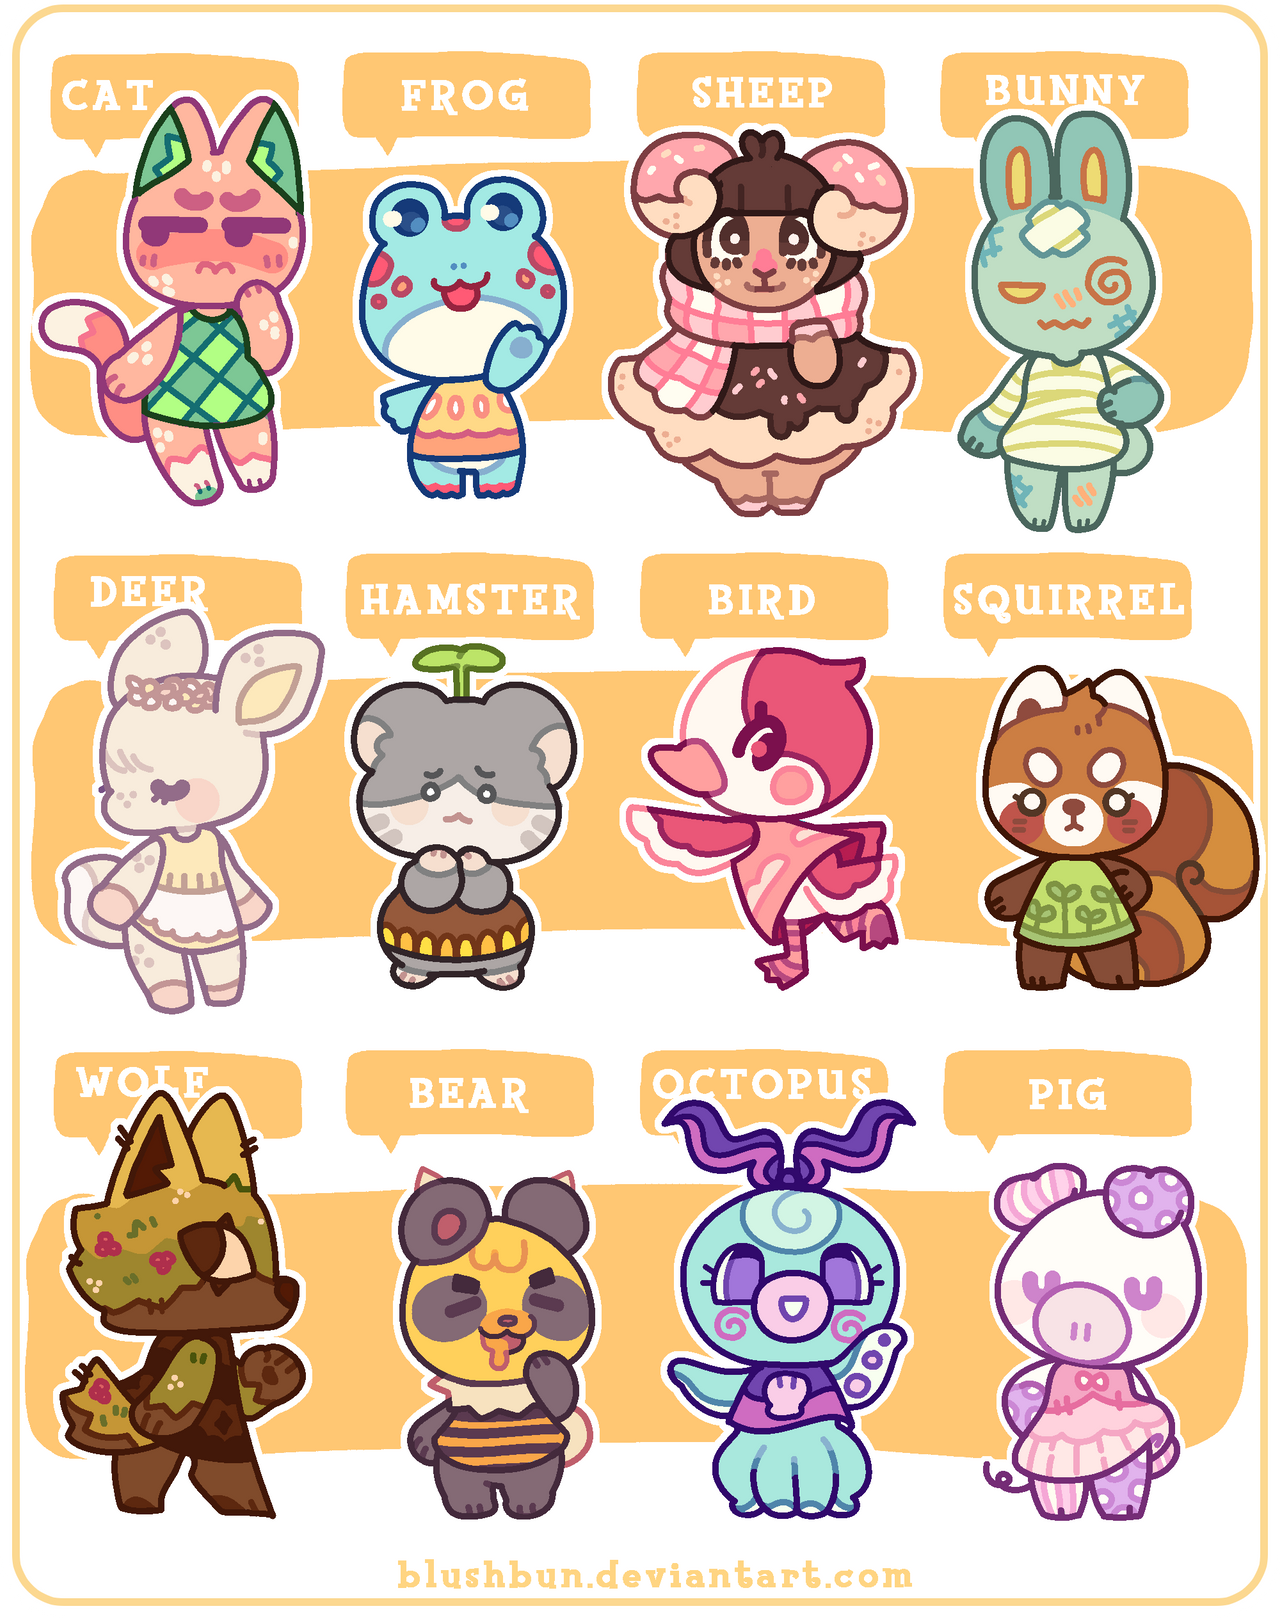 Closed More Villager Adopts By Plushpon On Deviantart